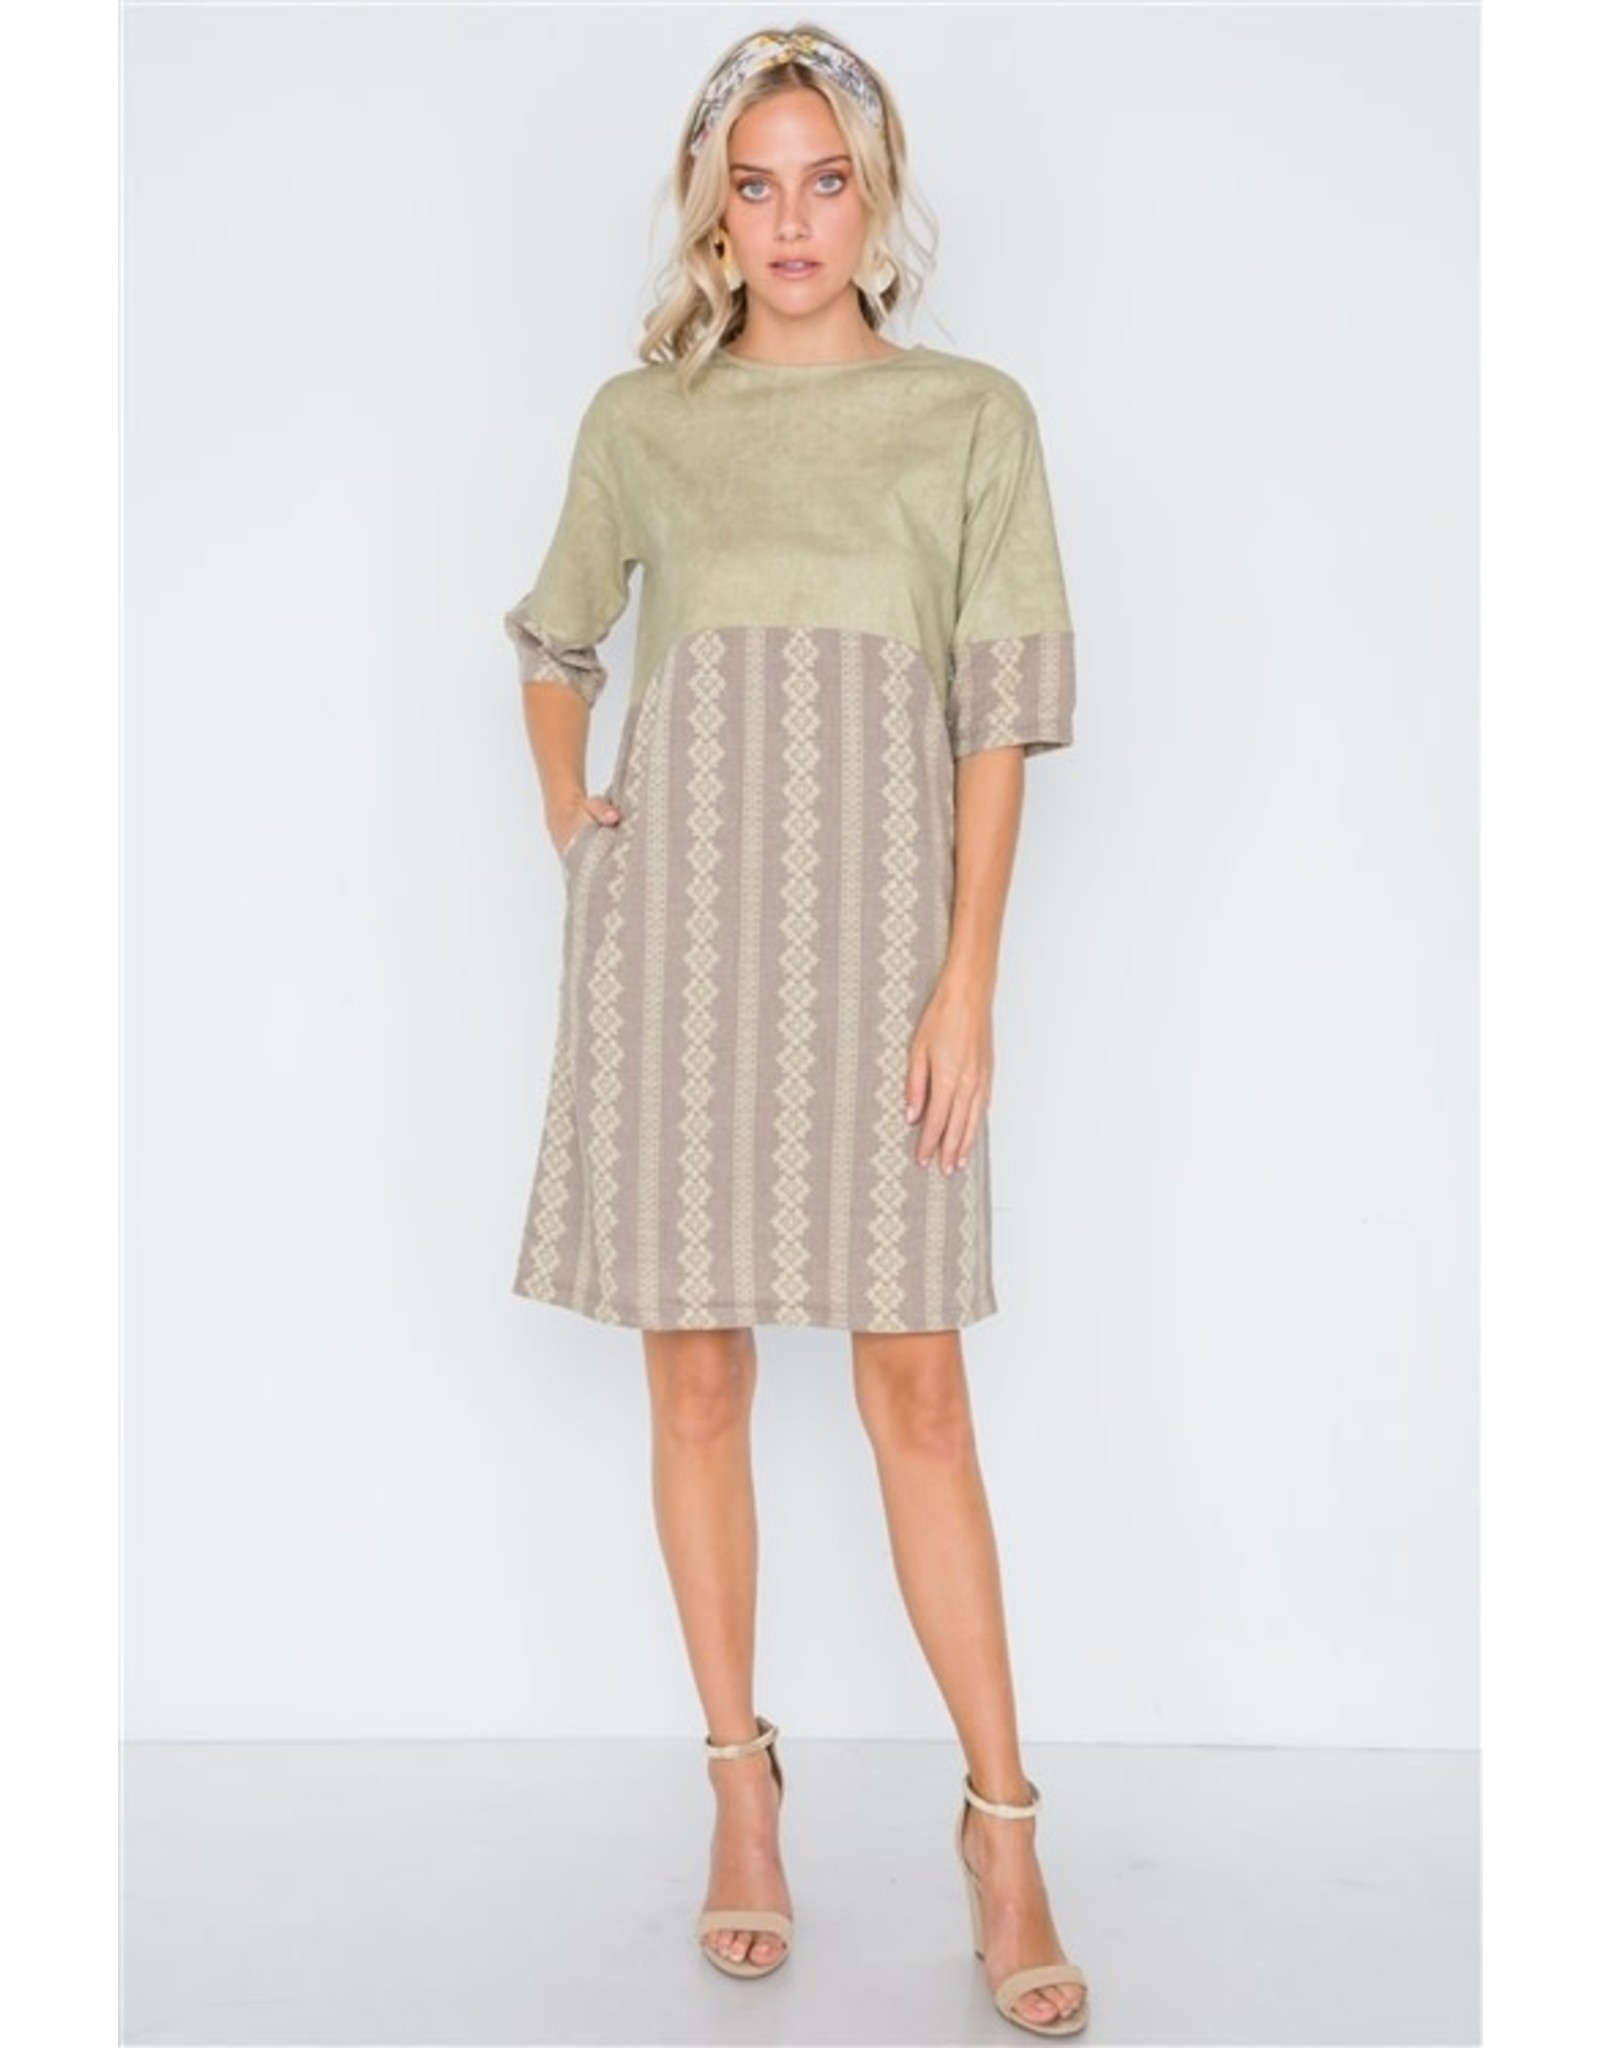 Mocha Olive Contrast Shift Boho Dress